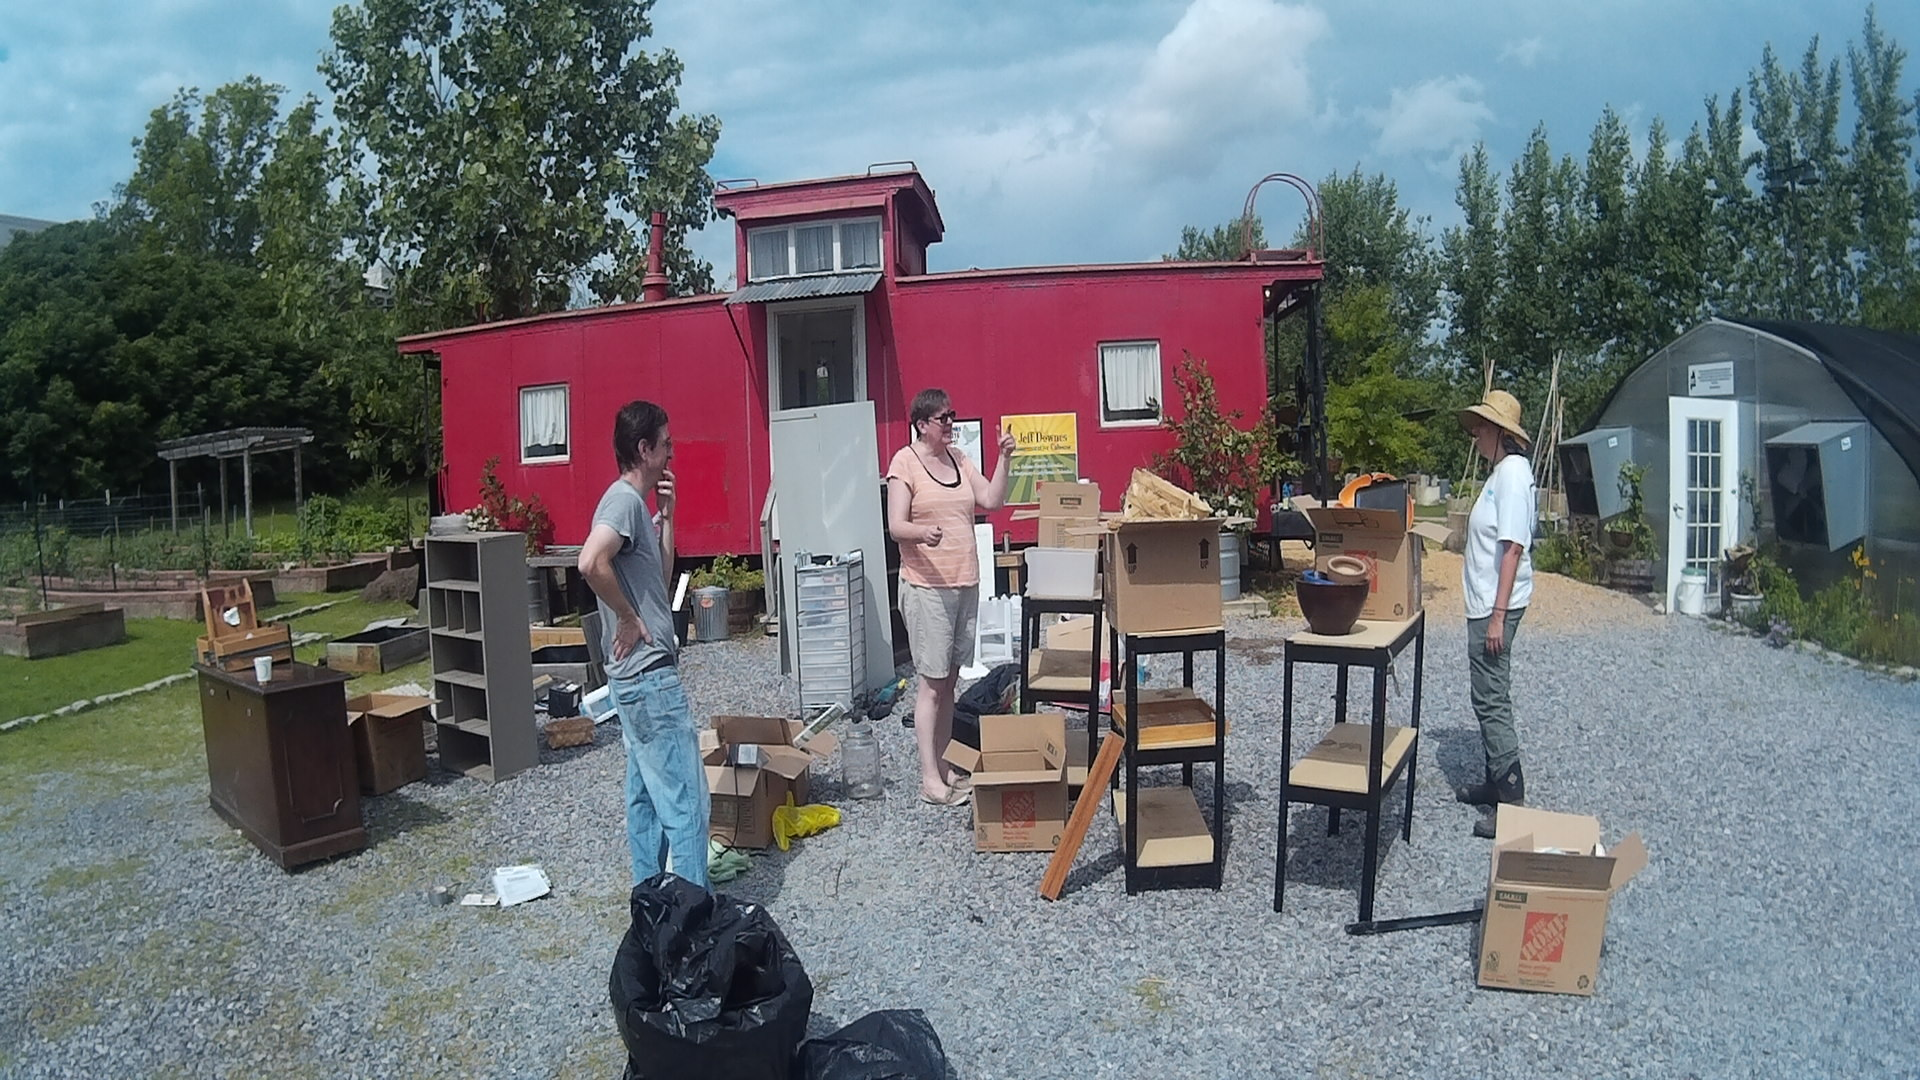 One pile for storage, one pile for the shipping container, one for garbage, and one for recycling